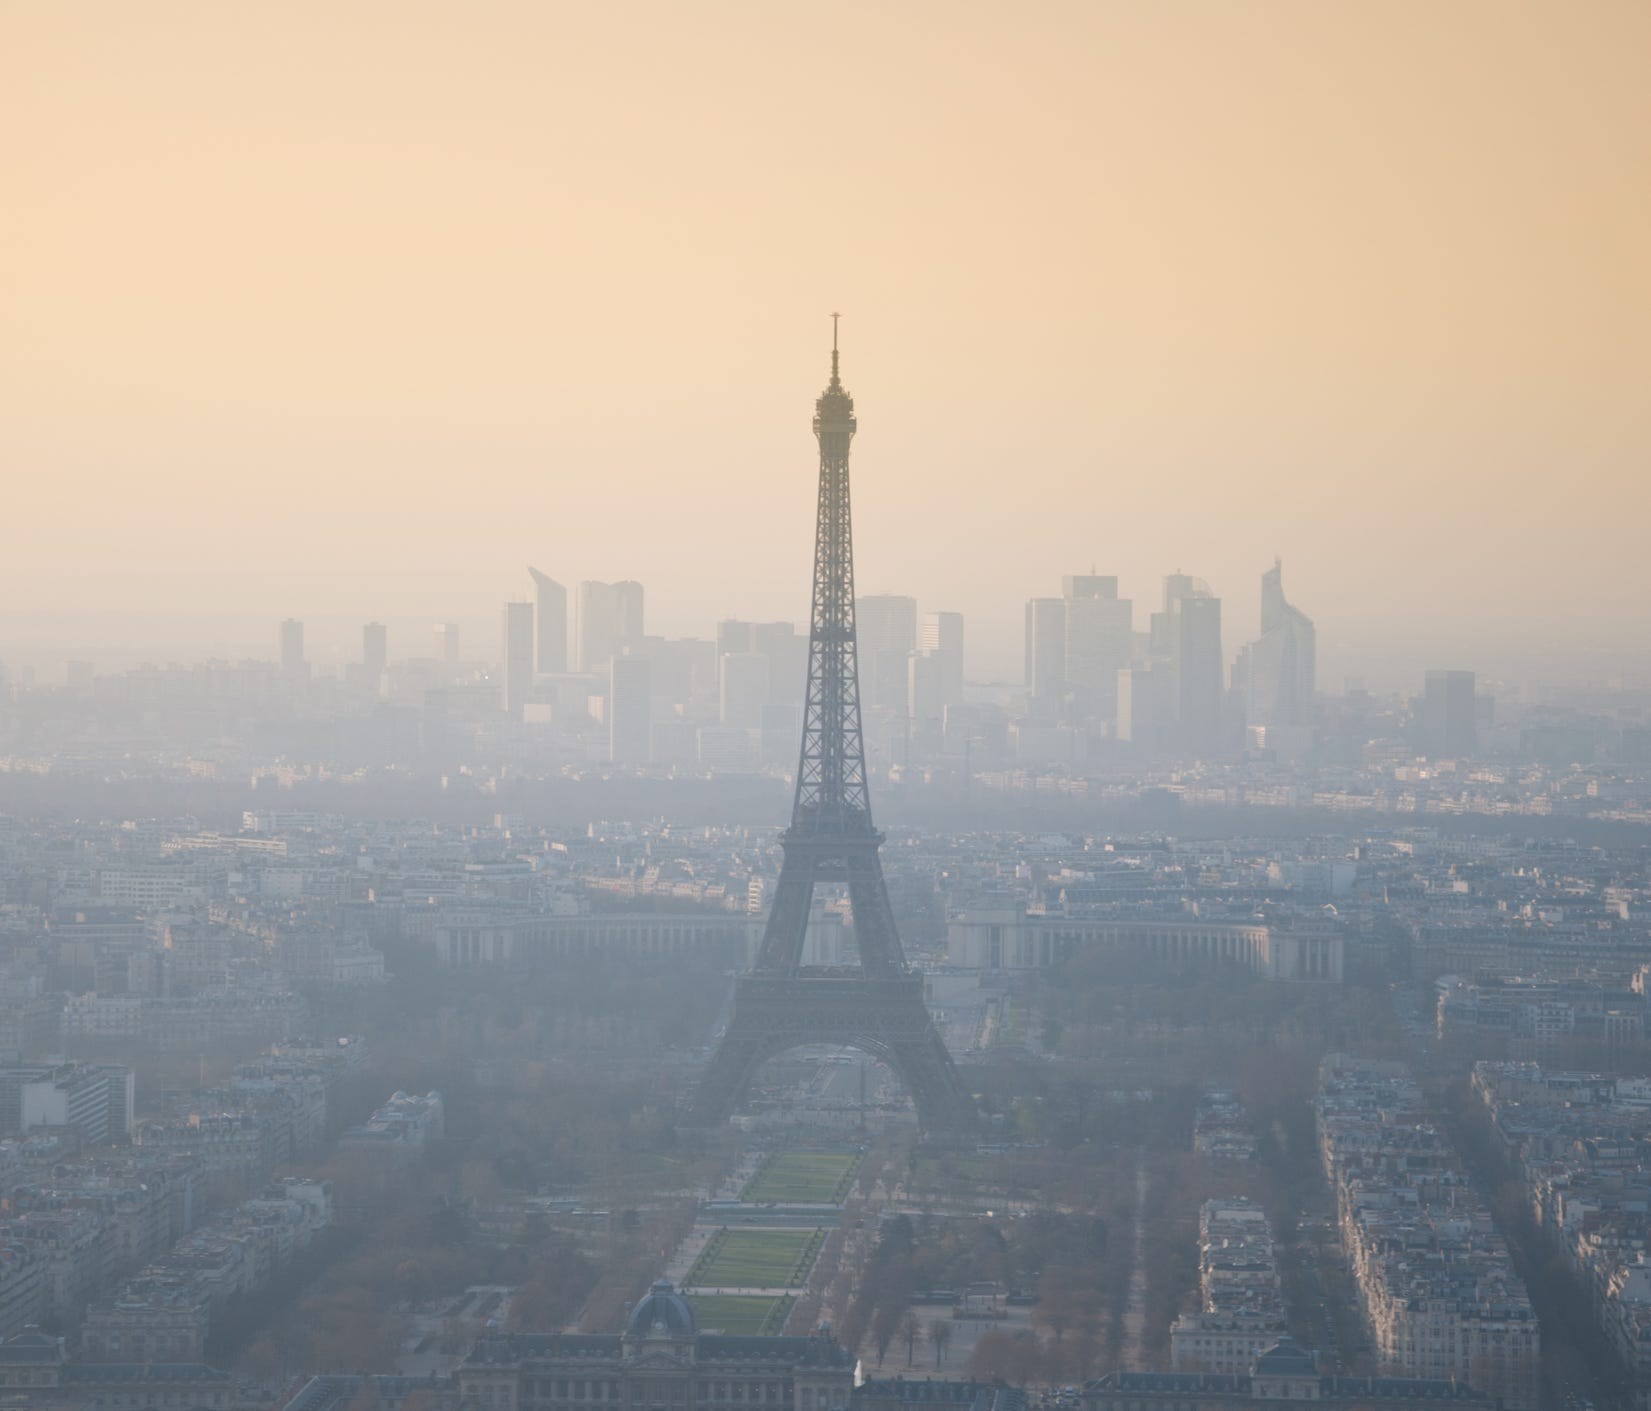 Paris: Paris, which has gone so far as to ban old-model cars (pre-1997) in an effort to go green, is still striving to fight car emissions that contribute to its poor air quality. Paris public transit is free to passengers on days with high smog, a m